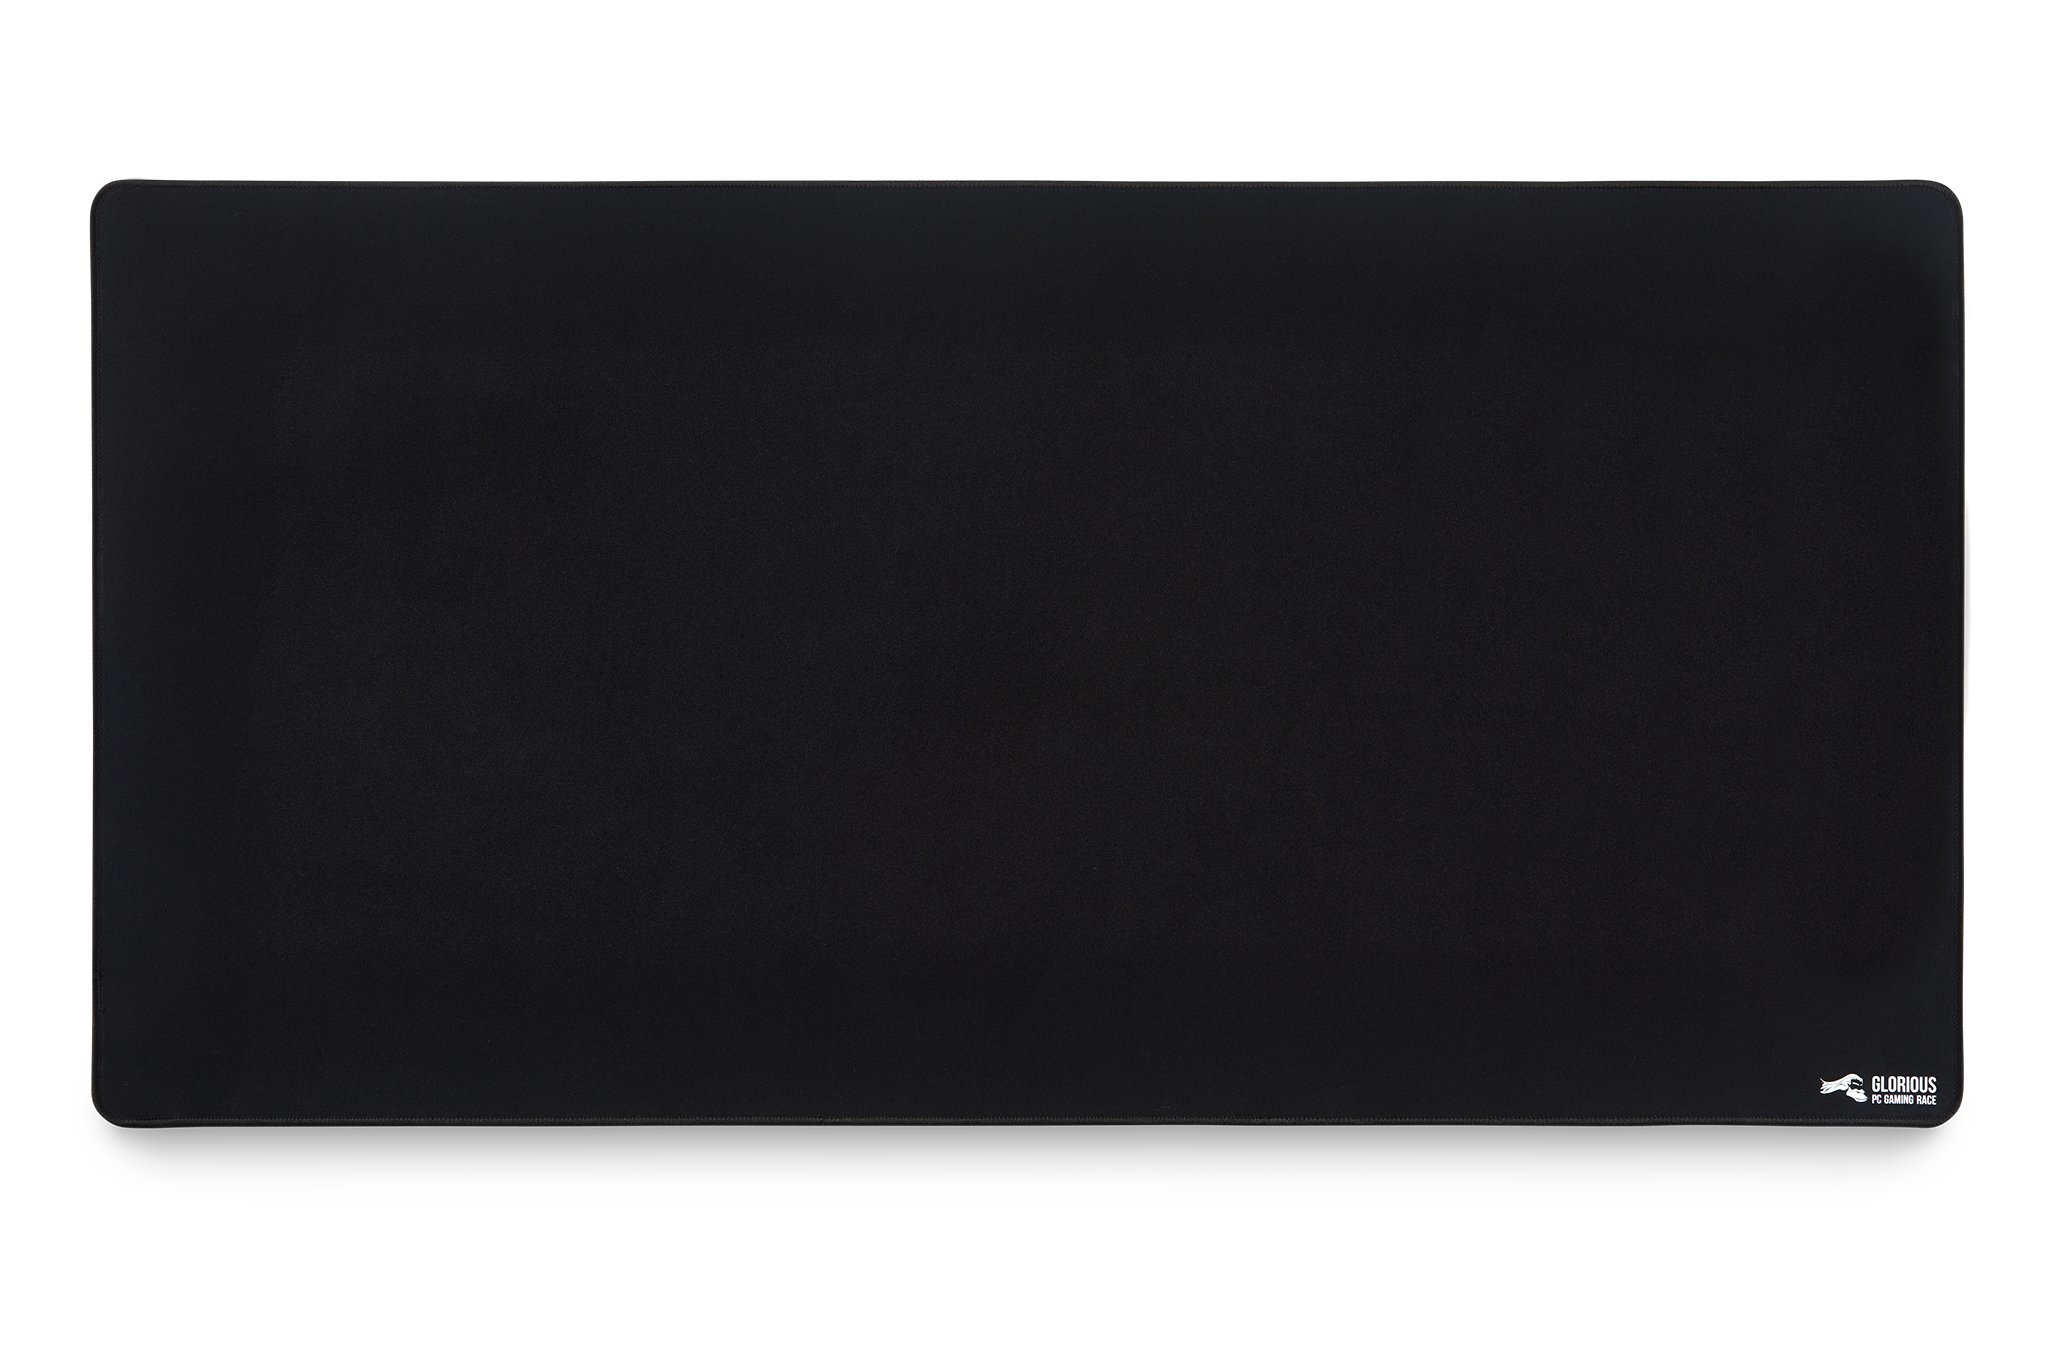 Glorious XXL Extended Gaming Mouse Mat/Pad - Large, Wide (XLarge) Black Cloth Mousepad, Stitched Edges | 36x18'' (G-XXL) by Glorious PC Gaming Race